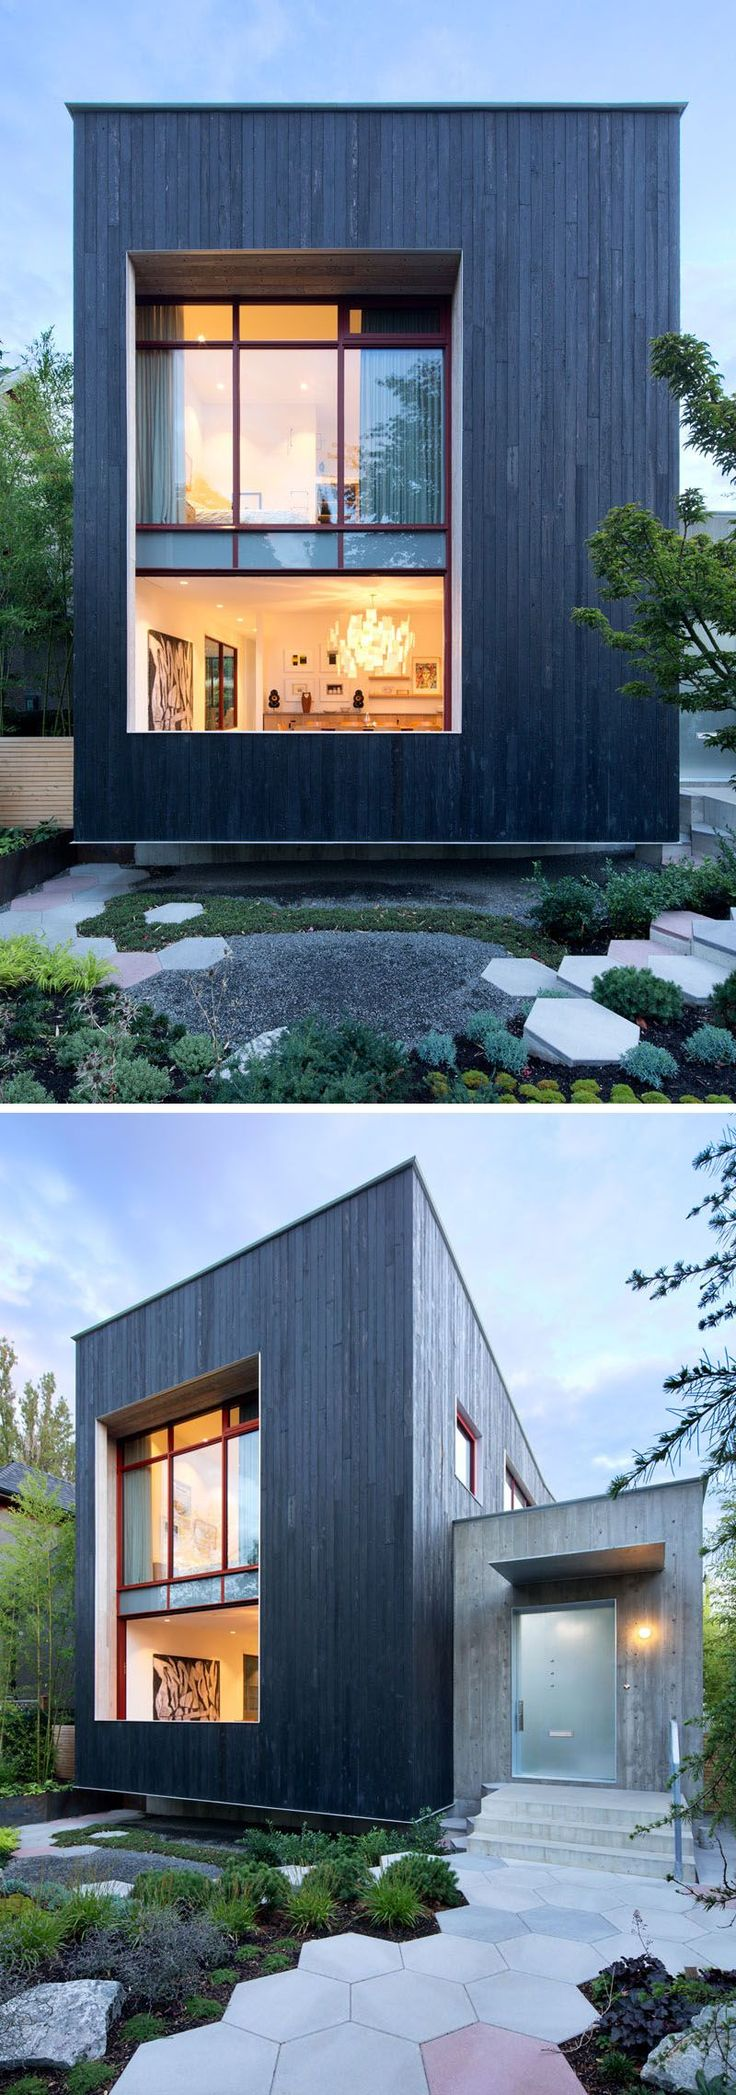 The exterior of this modern house is covered in carbonized cypress exterior cladding, giving it a bold and dark appearance, while hexagon stepping stones guide visitors to the front door.